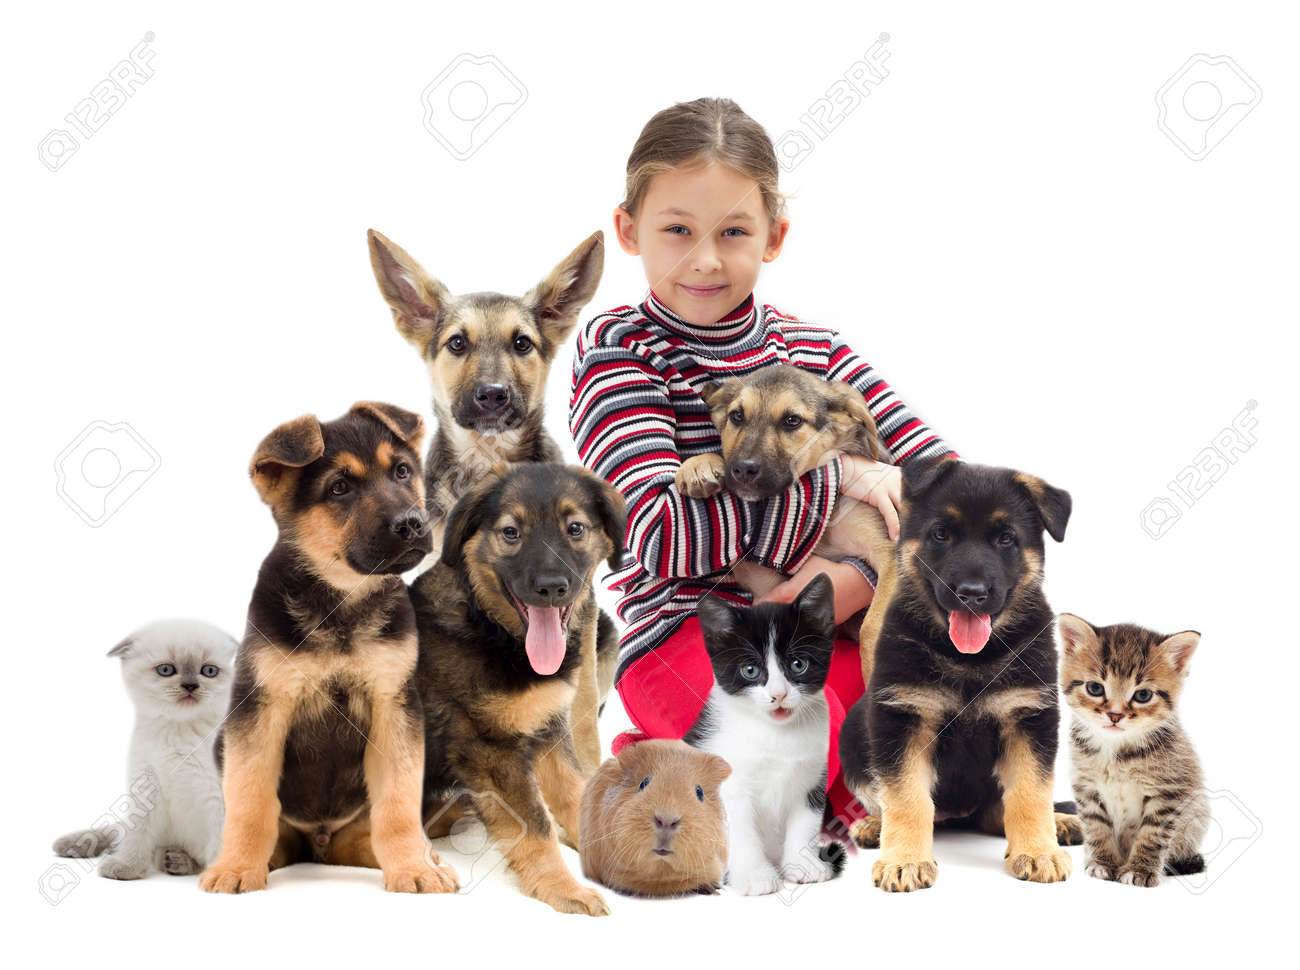 child and puppy - 33655729